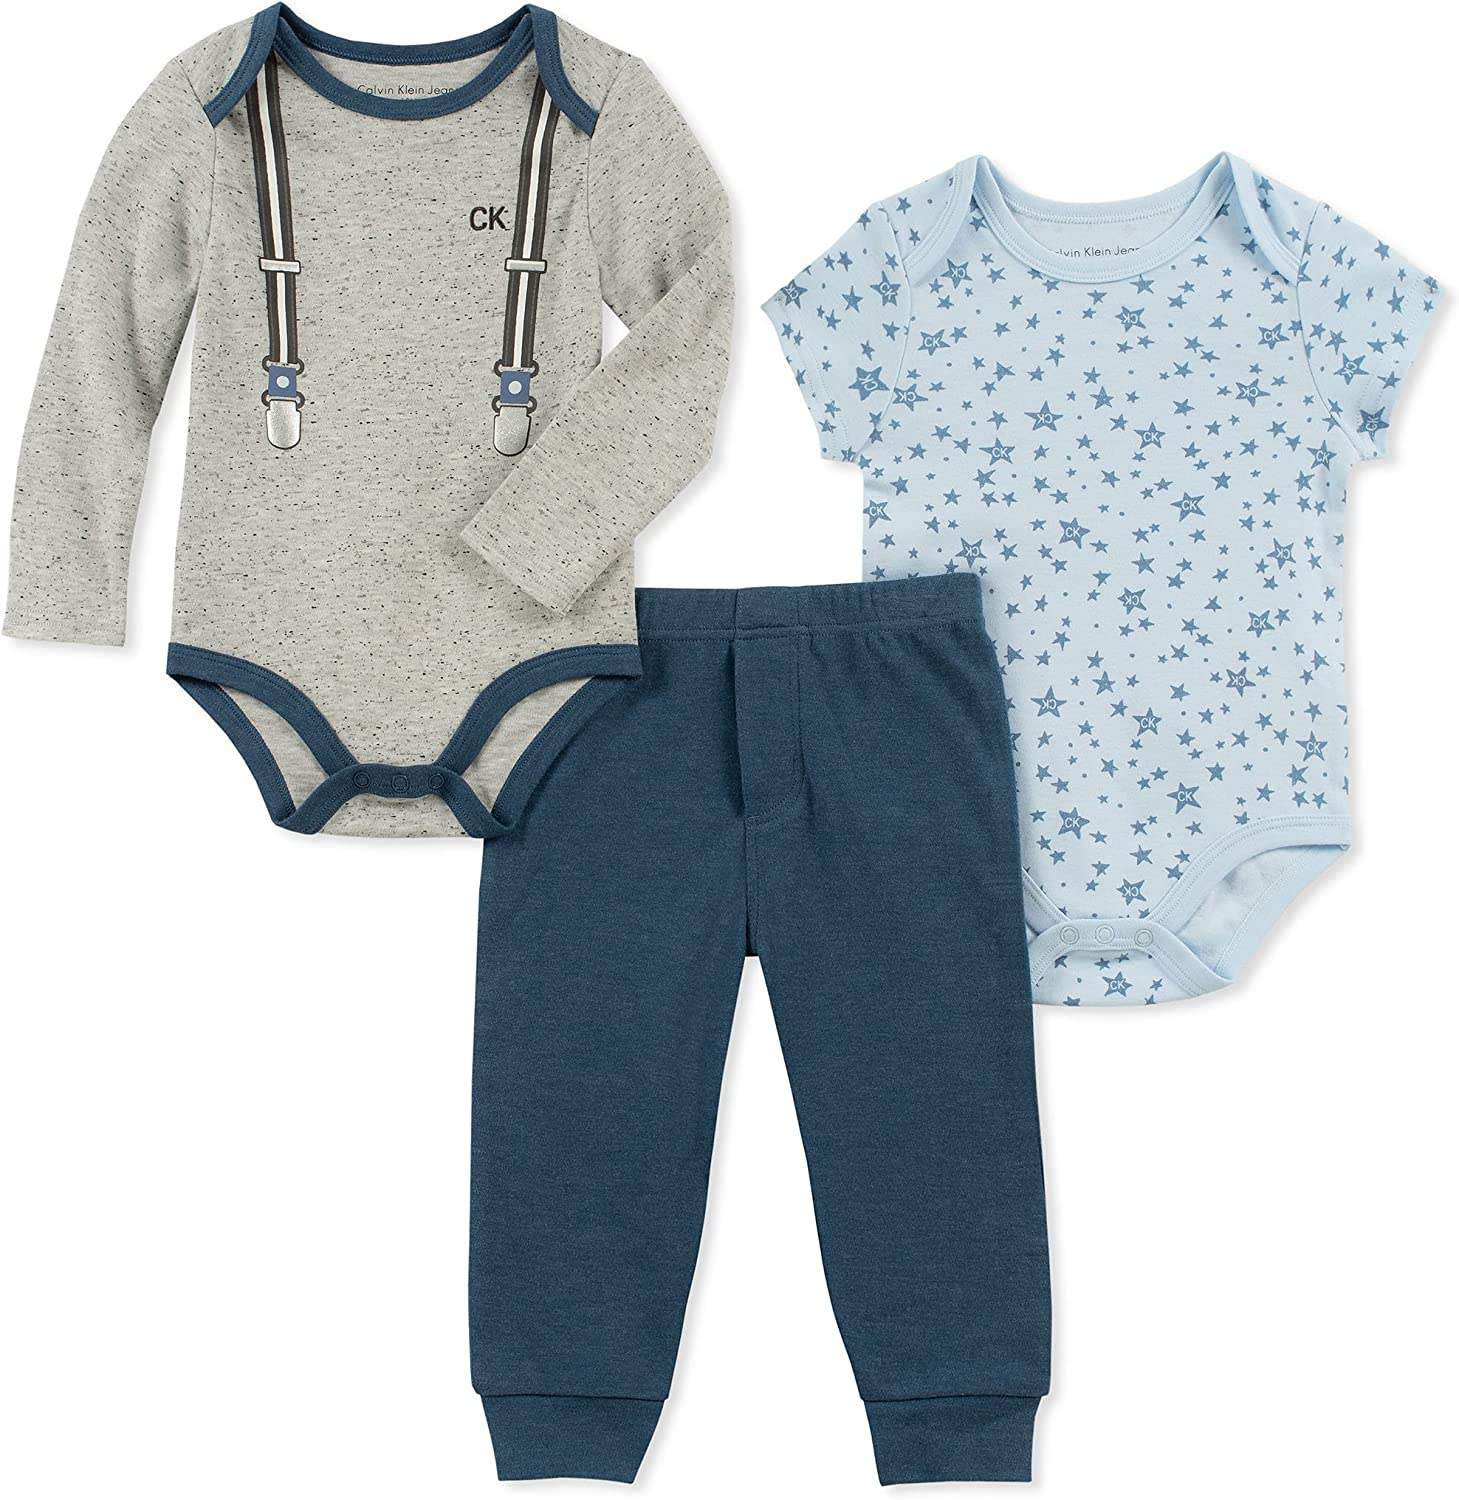 paquete de 4 6-9 Meses Azul//Gris Simple Joys by Carters pantal/ón para beb/é